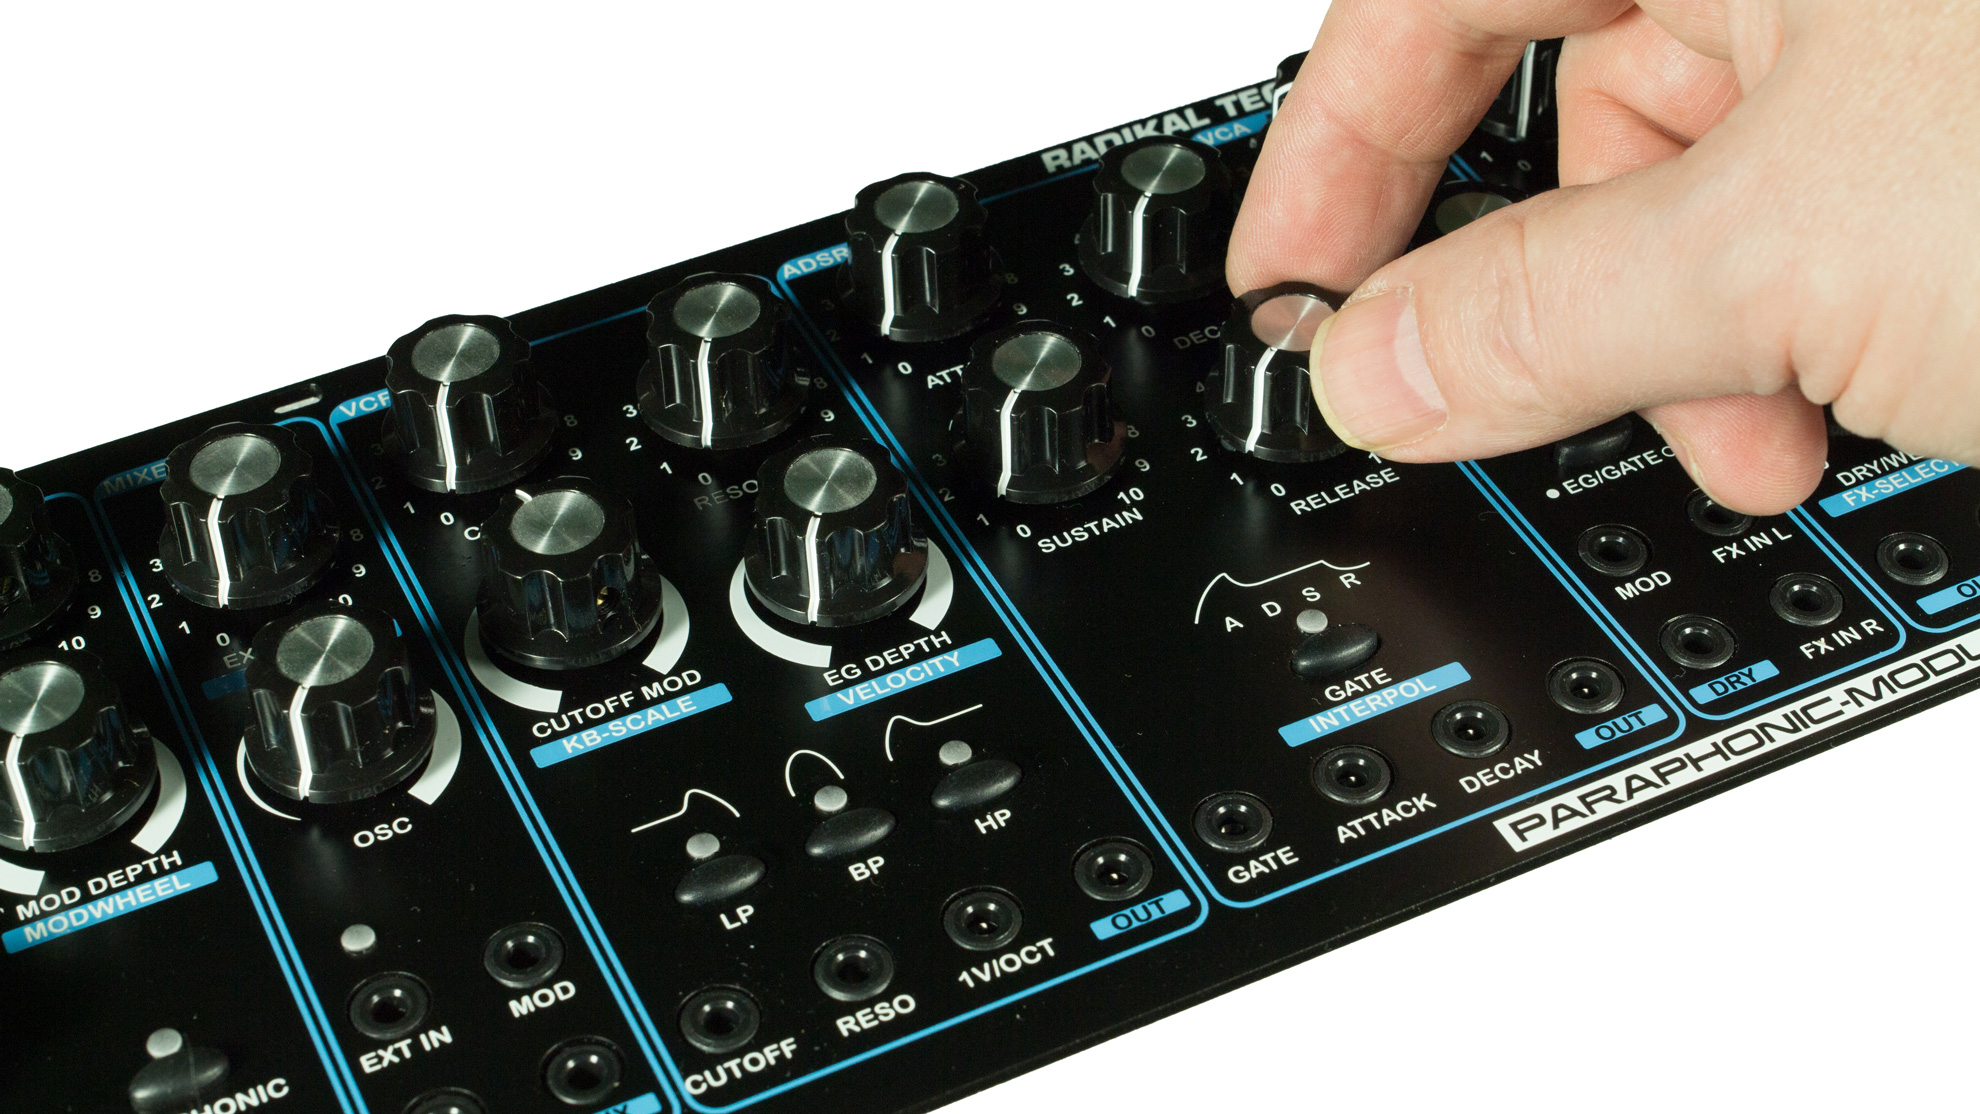 DELTA CEP A - Paraphonic Modular Synthesizer